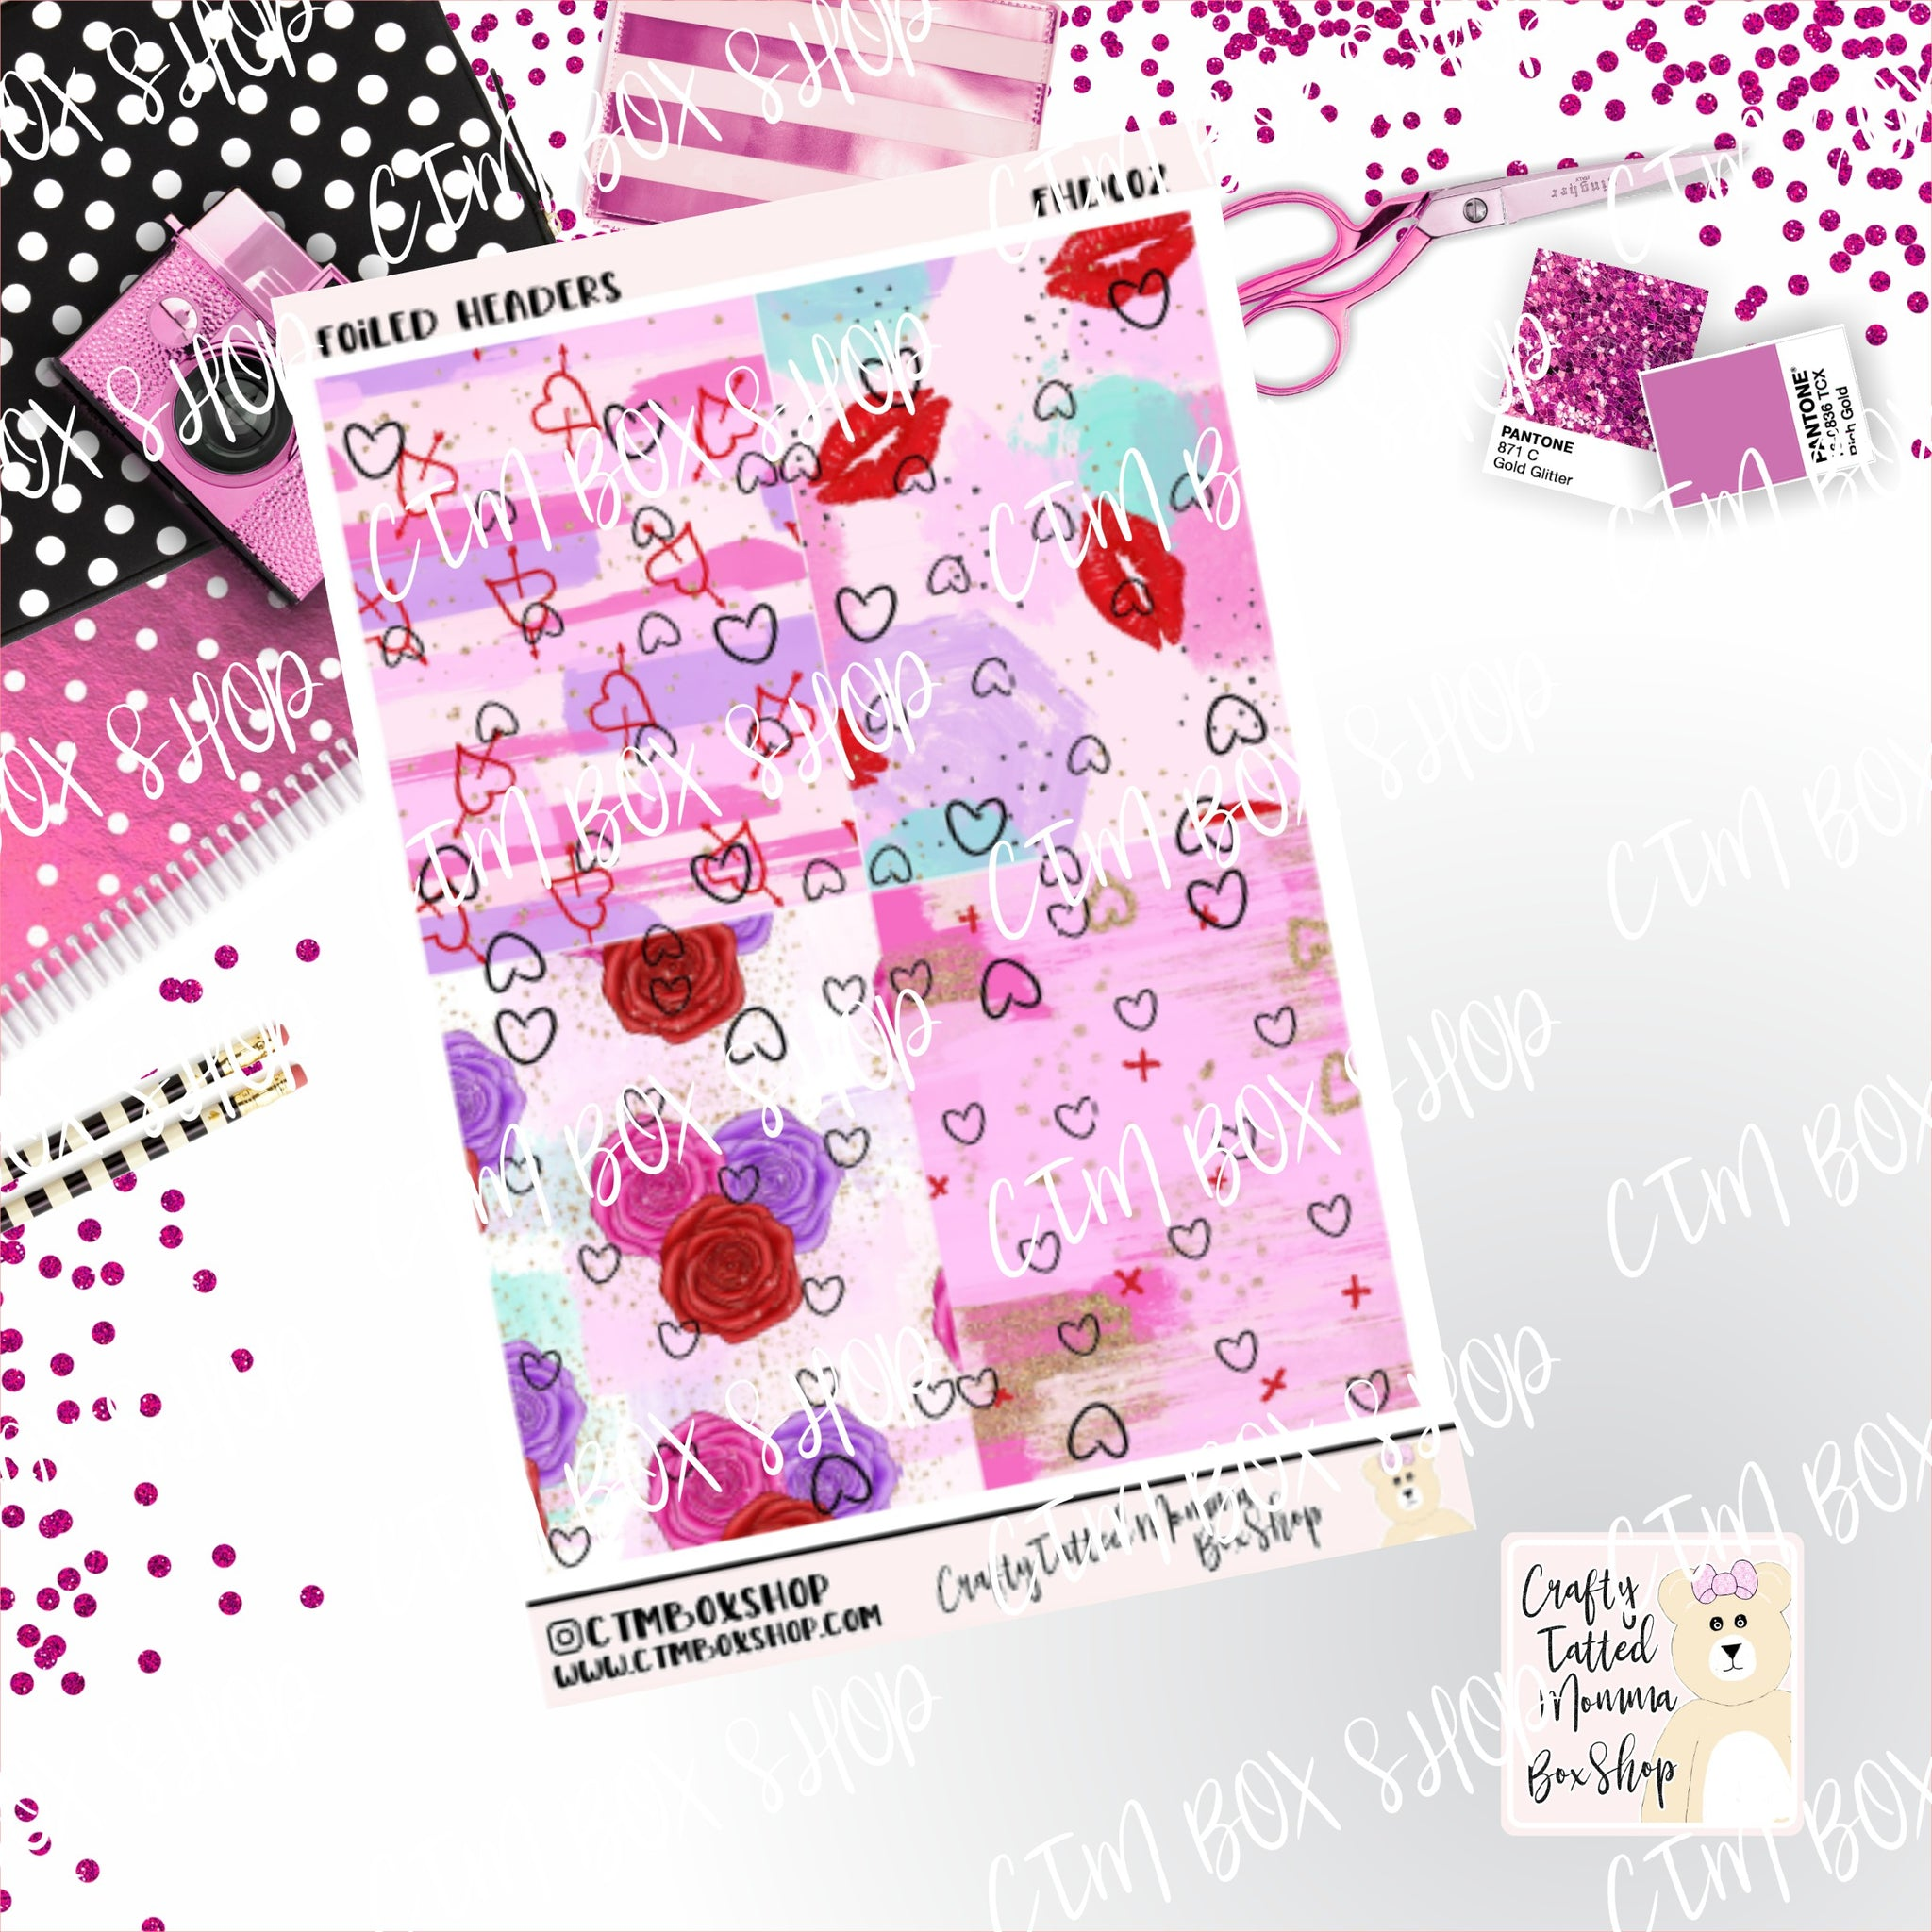 Foiled Hearts Header Stickers, foiled stickers, header stickers, planner stickers, Travelers Notbook stickers, Planner Headers